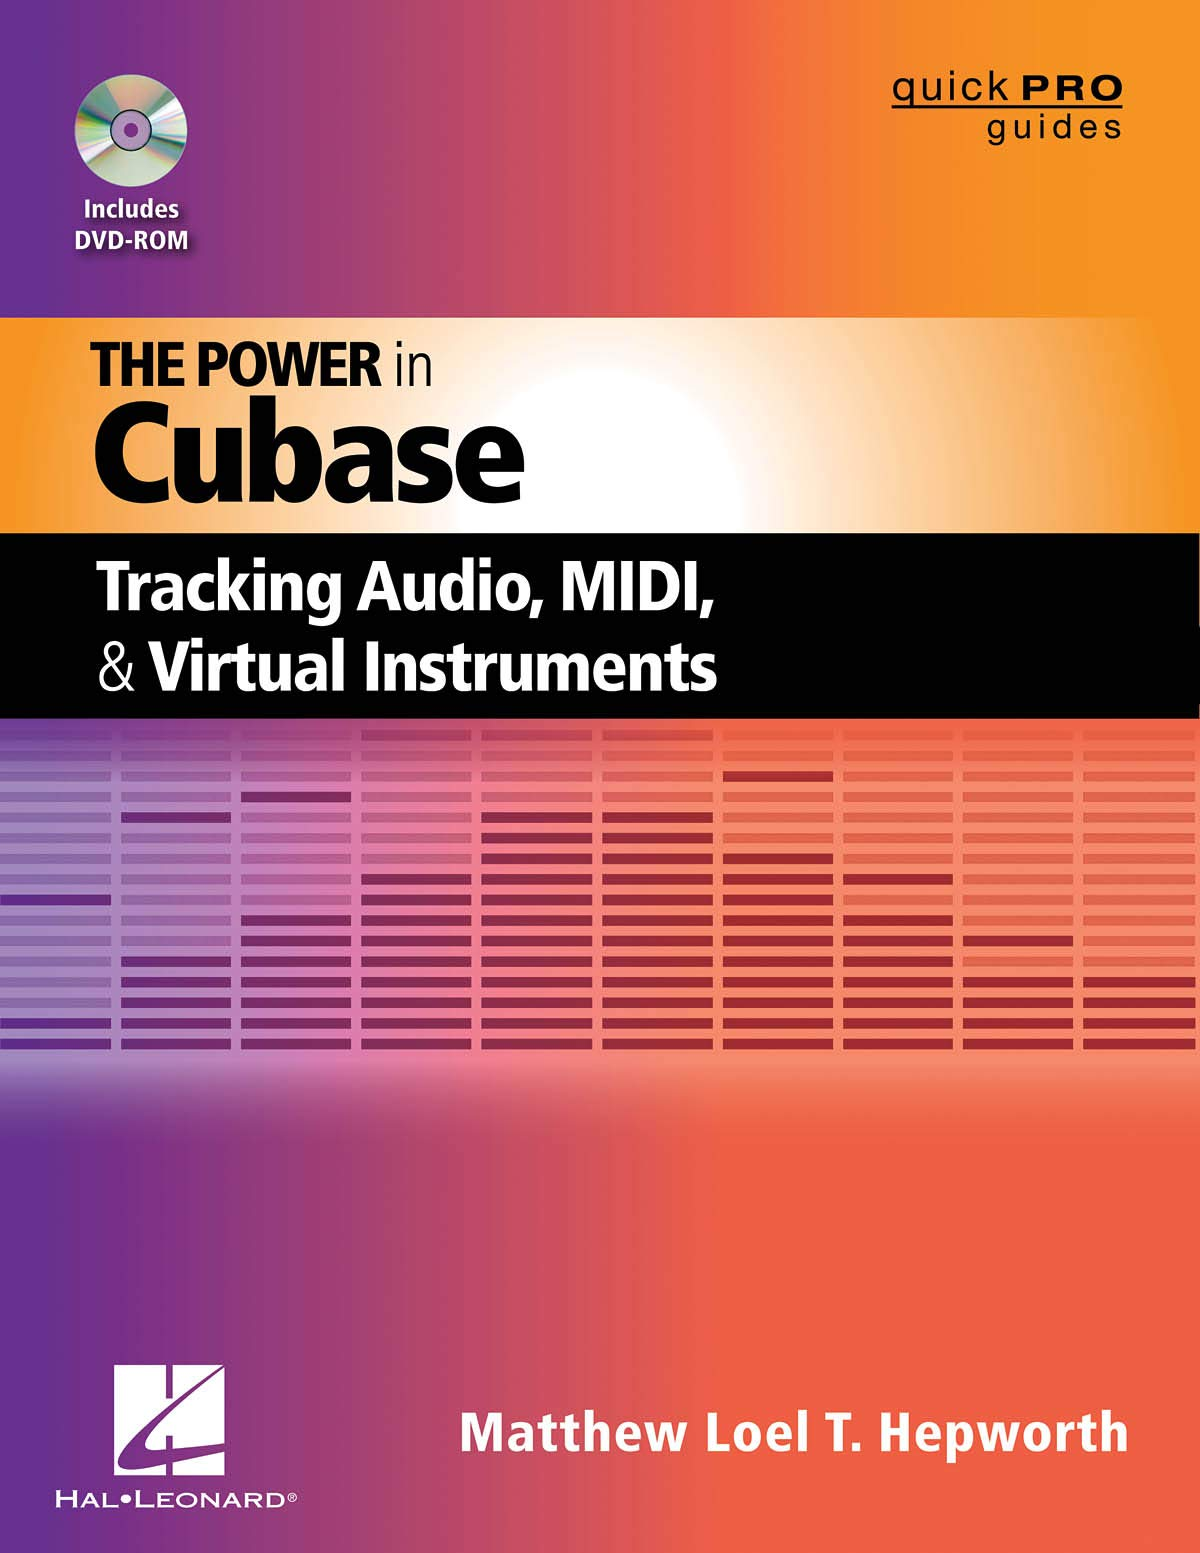 The Power in Cubase MIDI and Virtual Instruments Tracking Audio